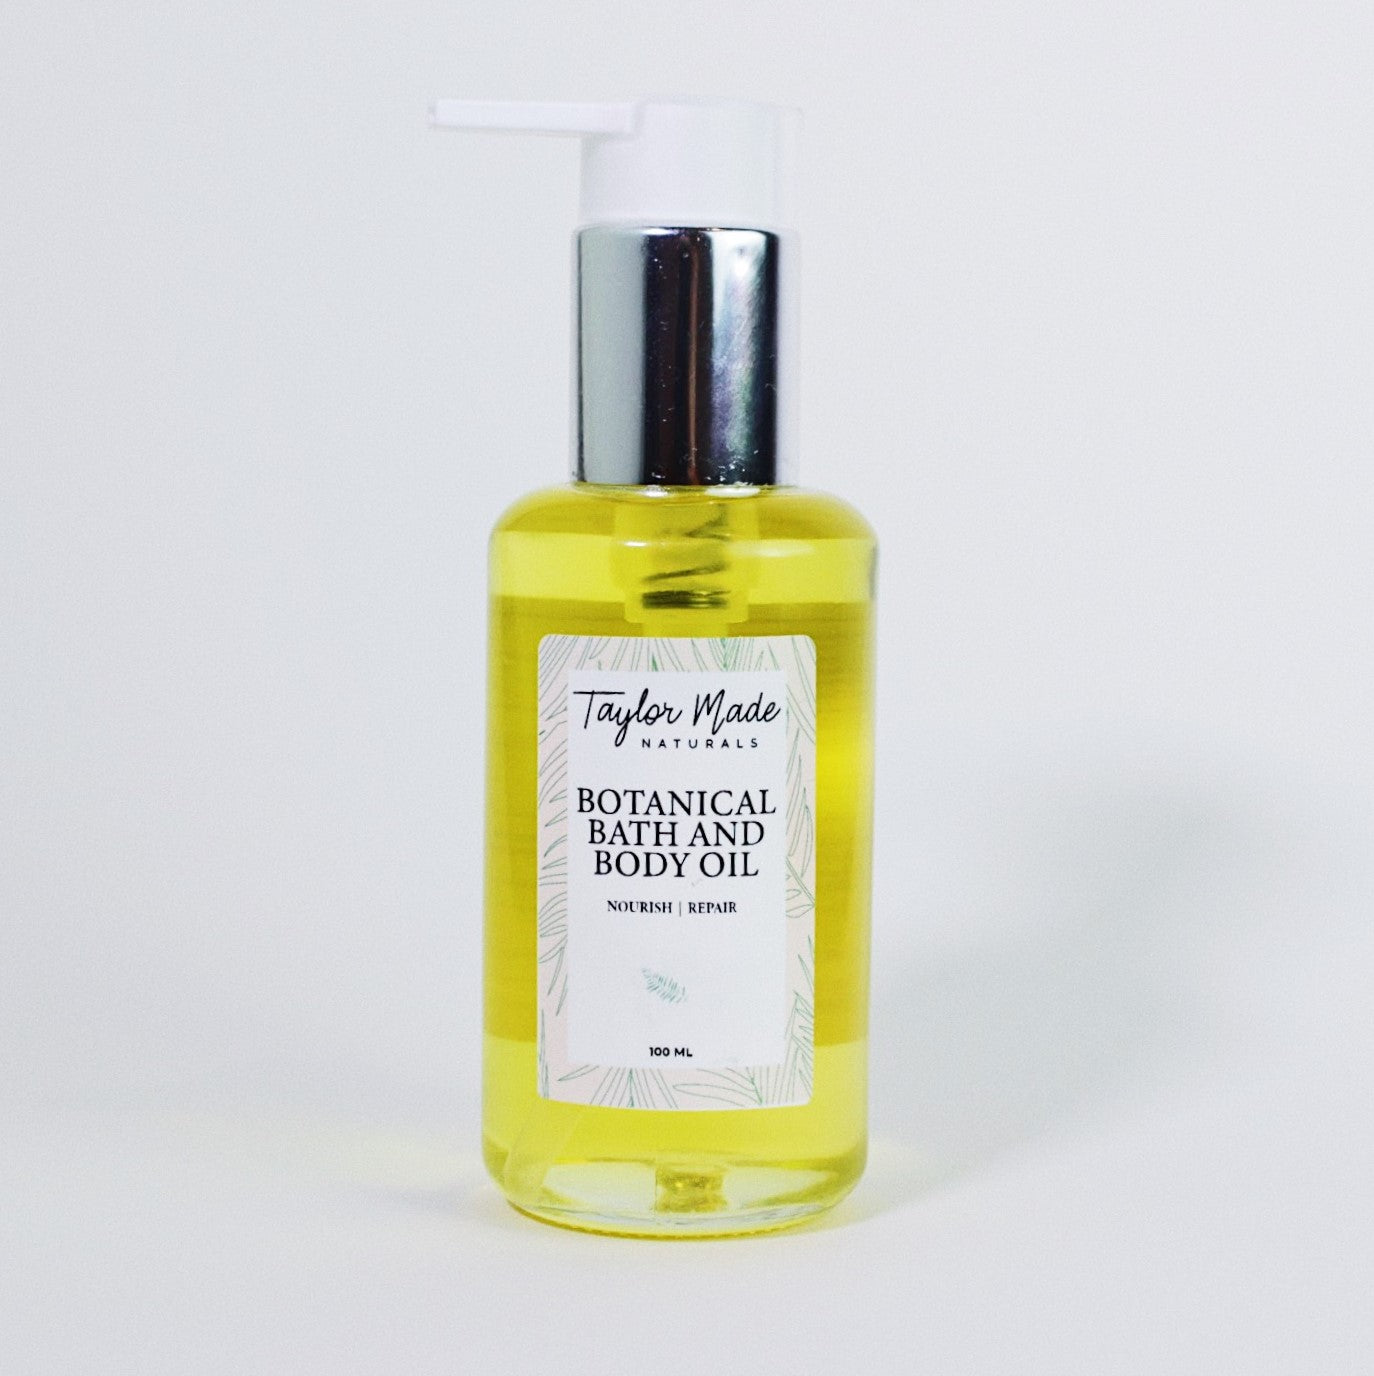 Botanical Bath and Body Oil 100ml